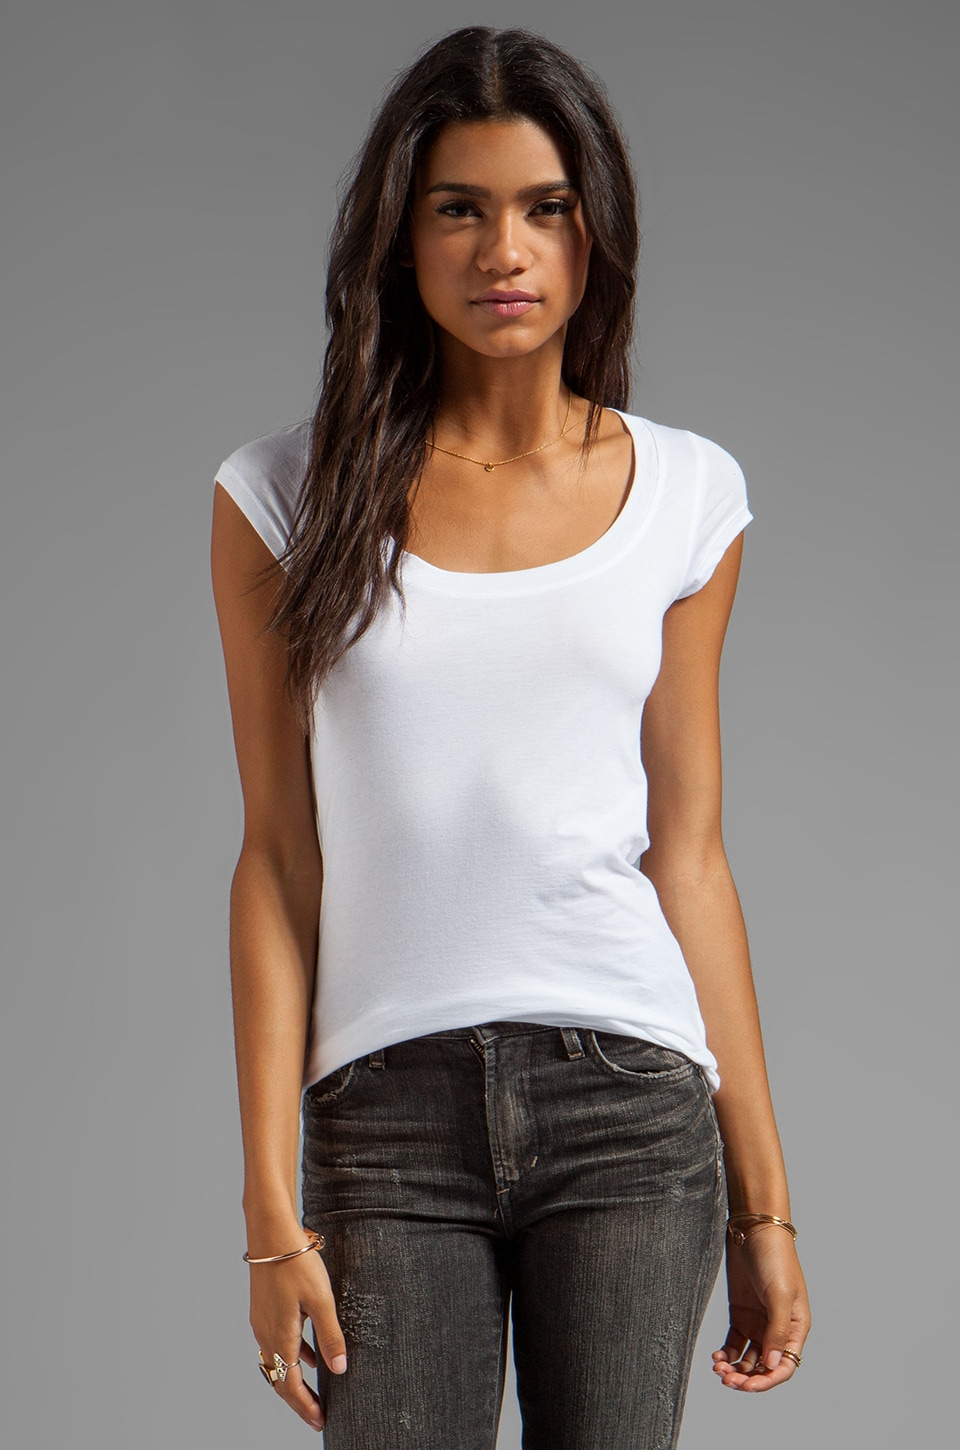 Theory Juin 2 Tee in White